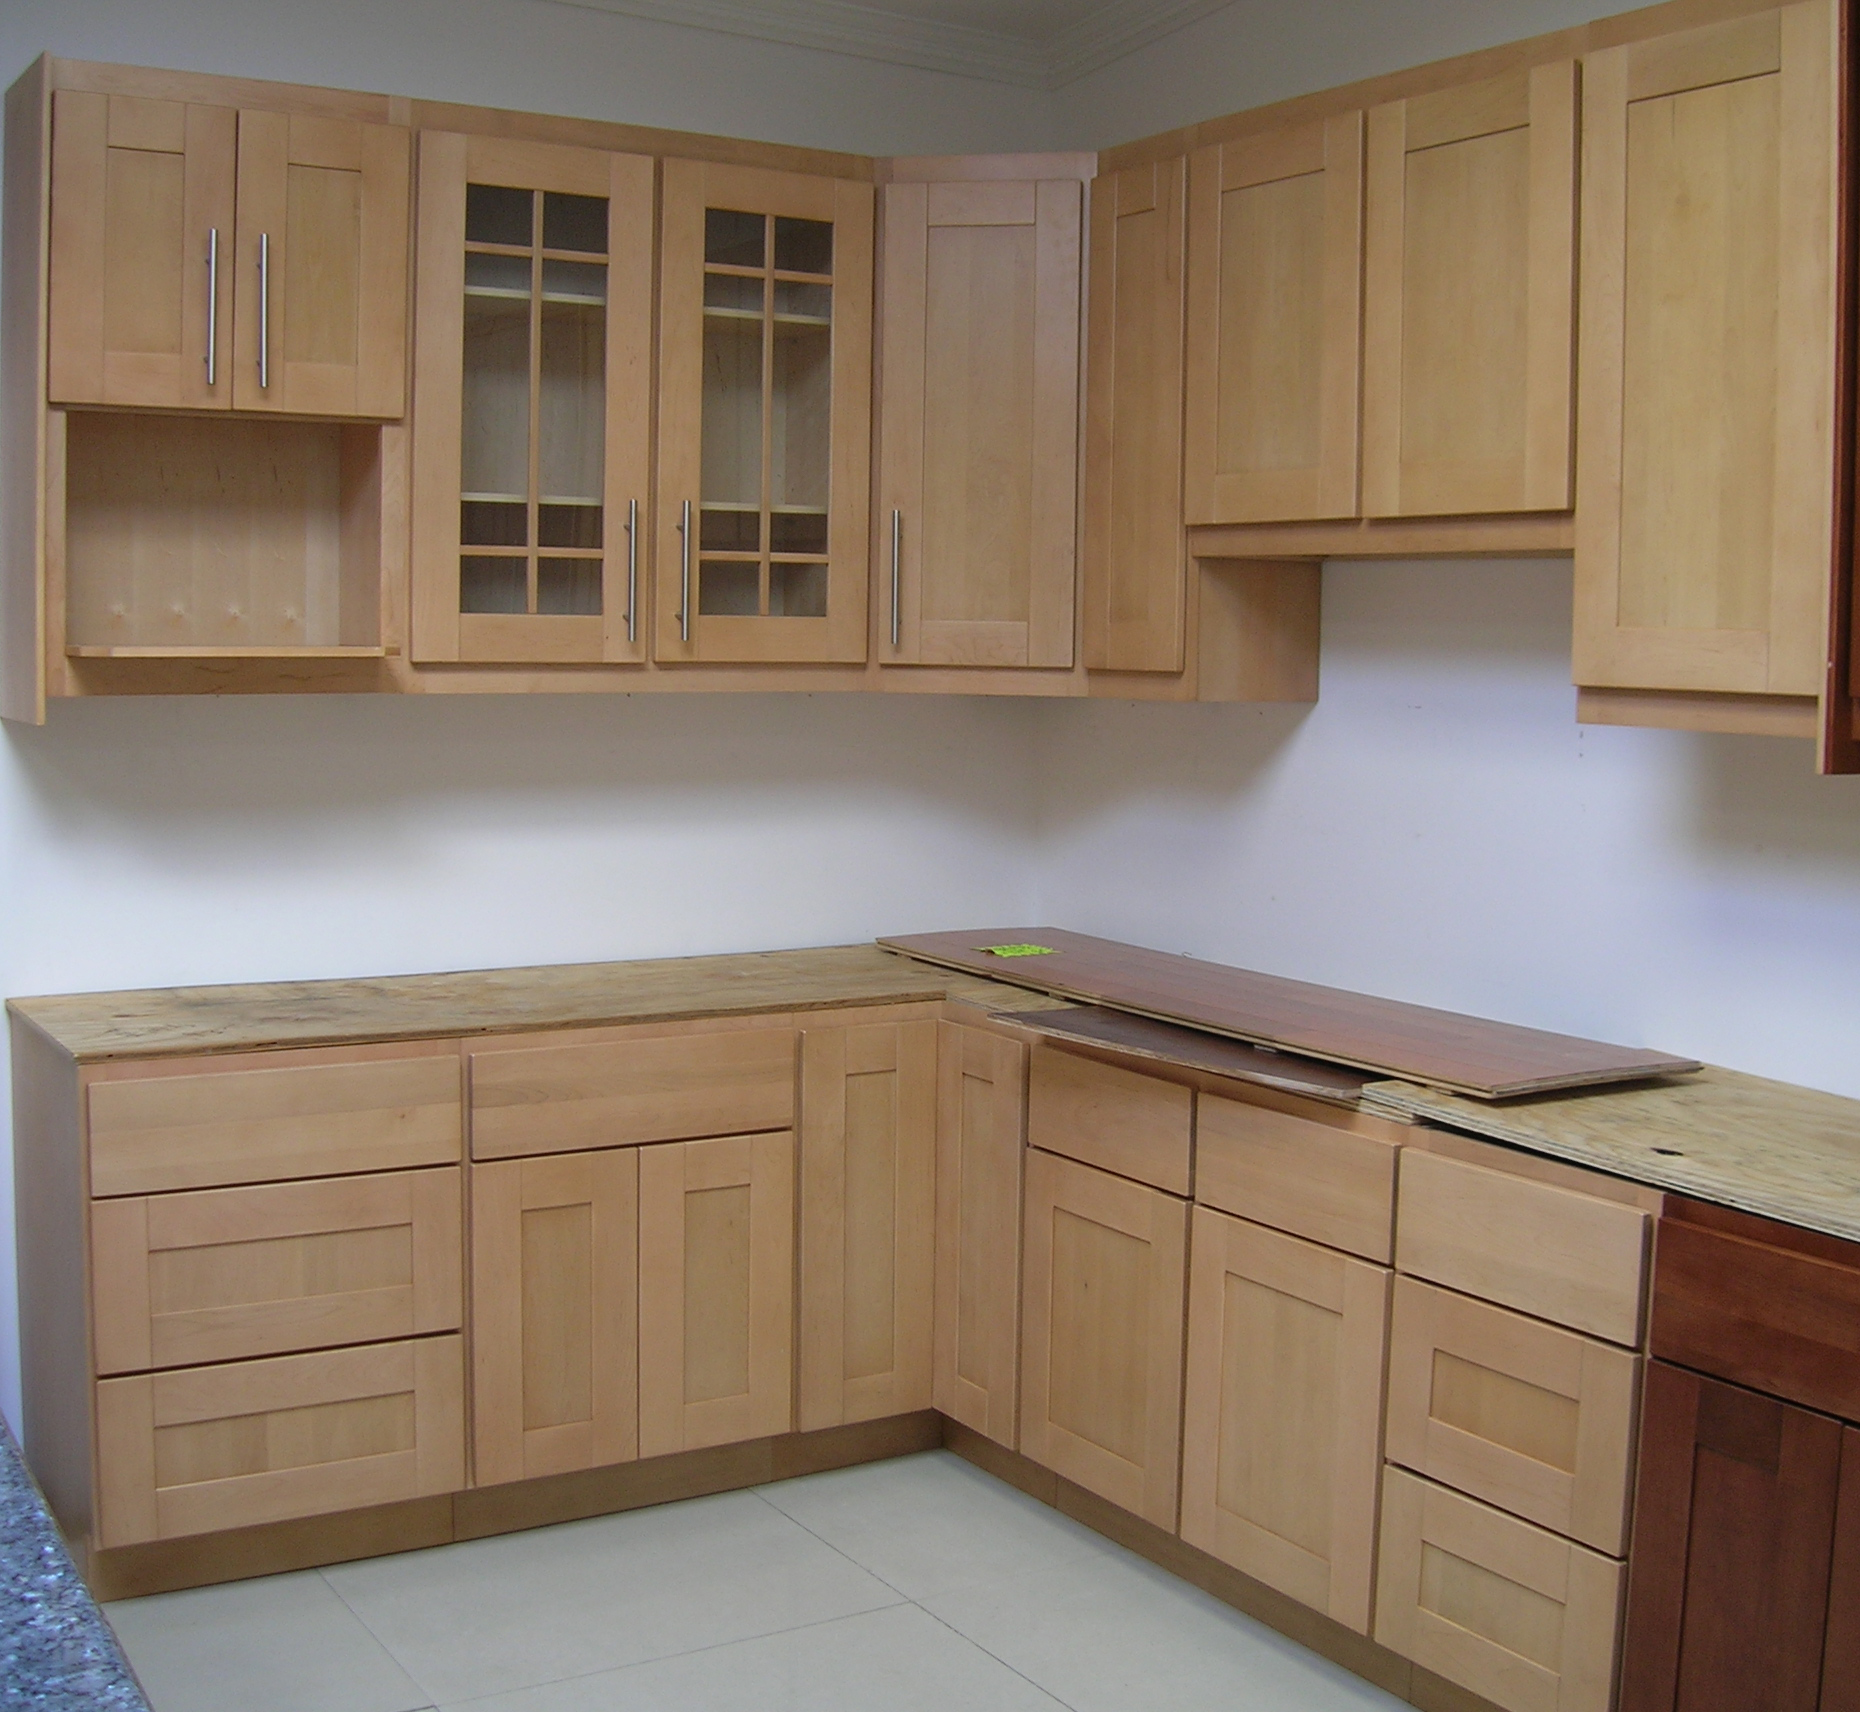 Kitchen Cabinets Premade Home Depot Pre Built Cabinets